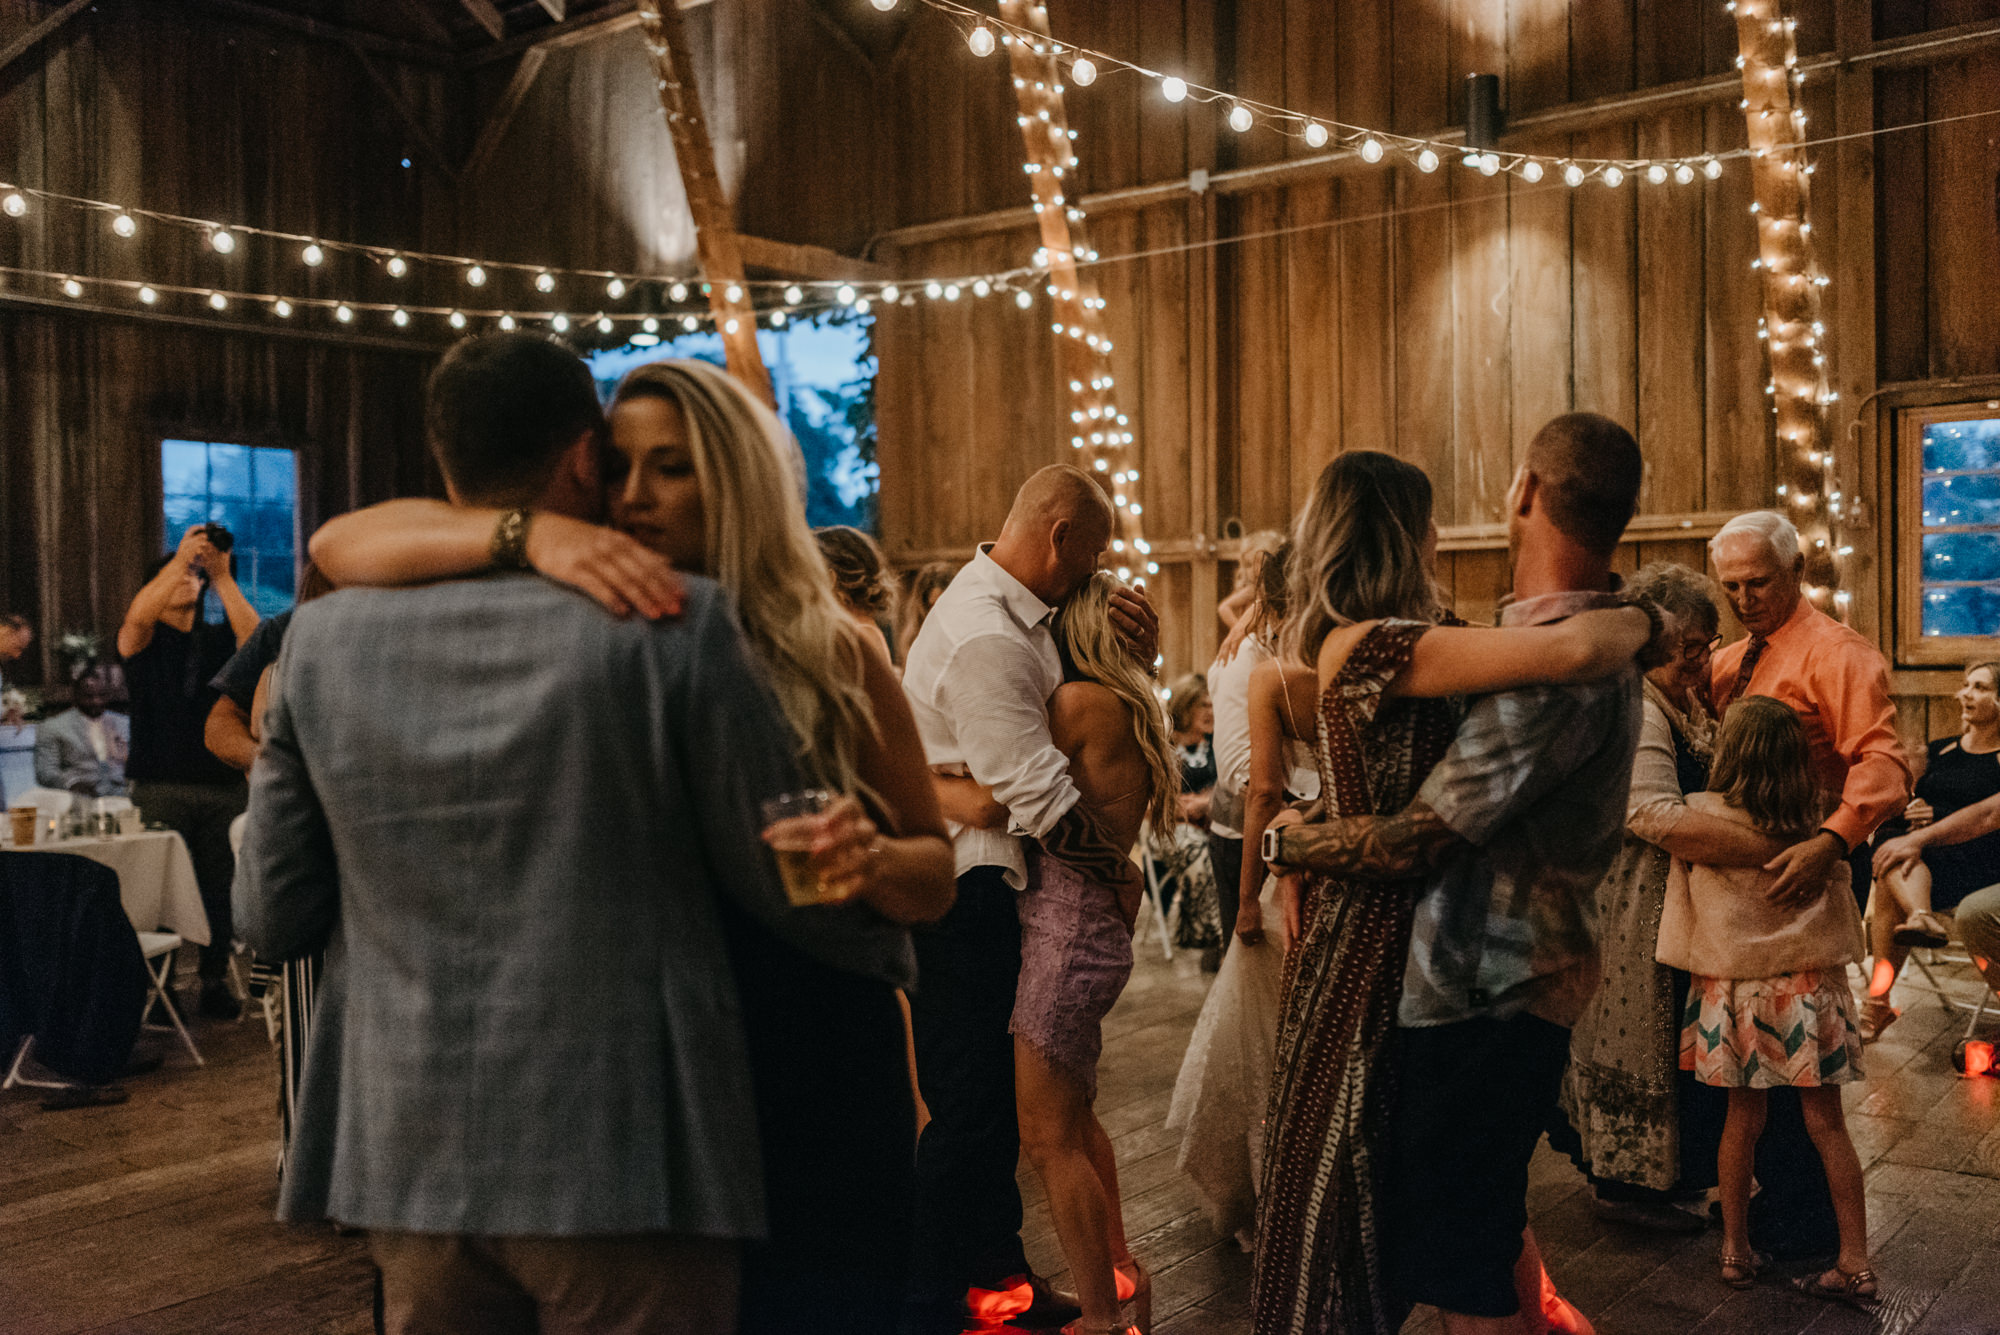 215-portland-northwest-wedding-bubble-exit-barn-string-lights.jpg